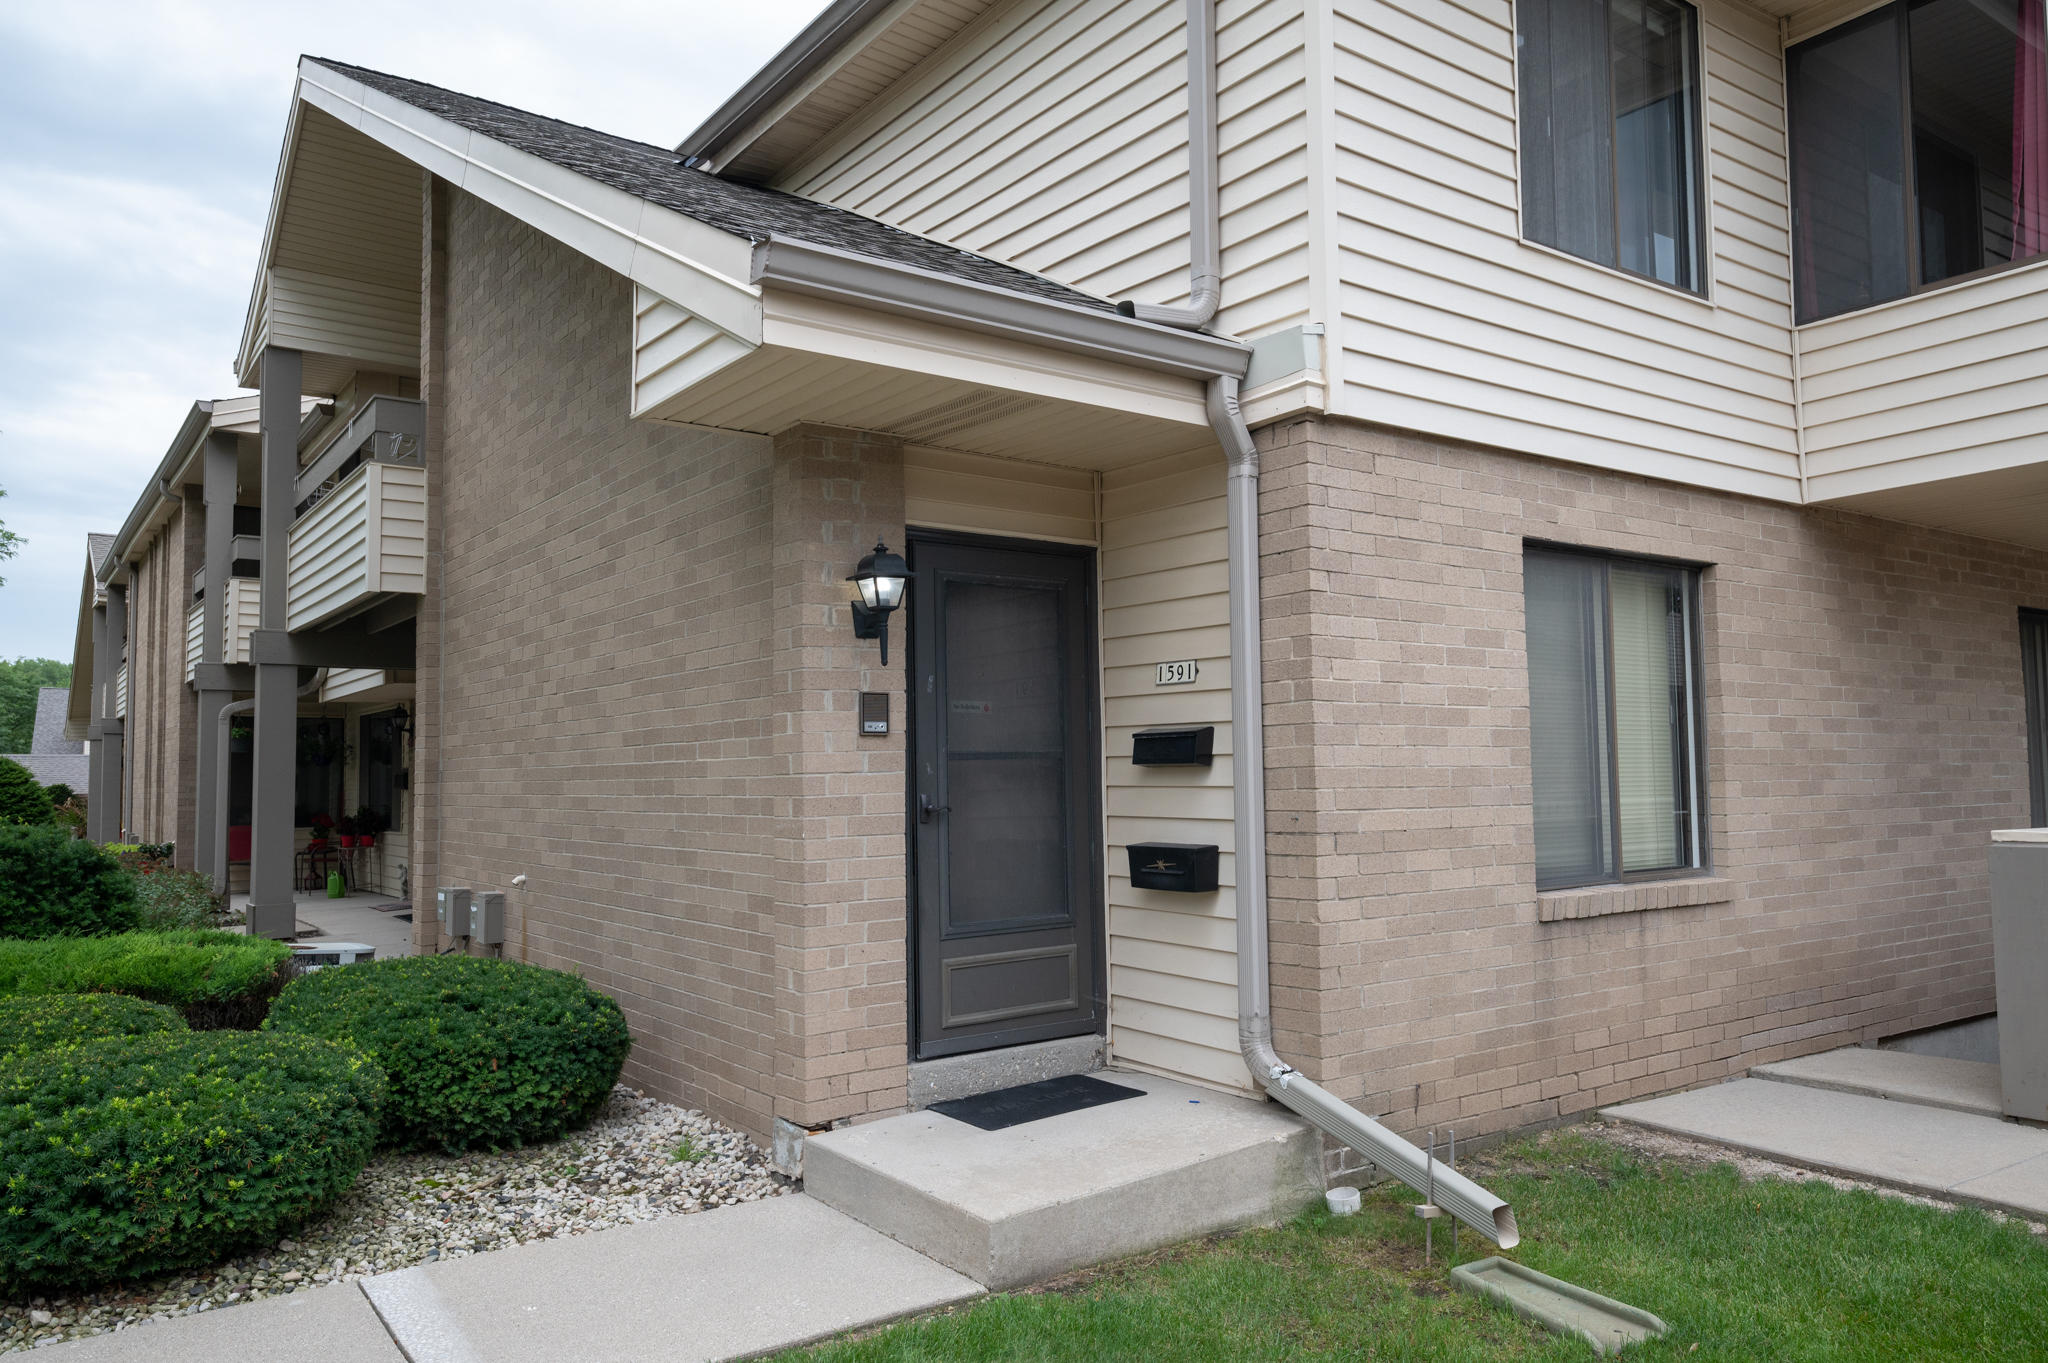 1591 S Carriage Ln #1591 New Berlin, WI 53151